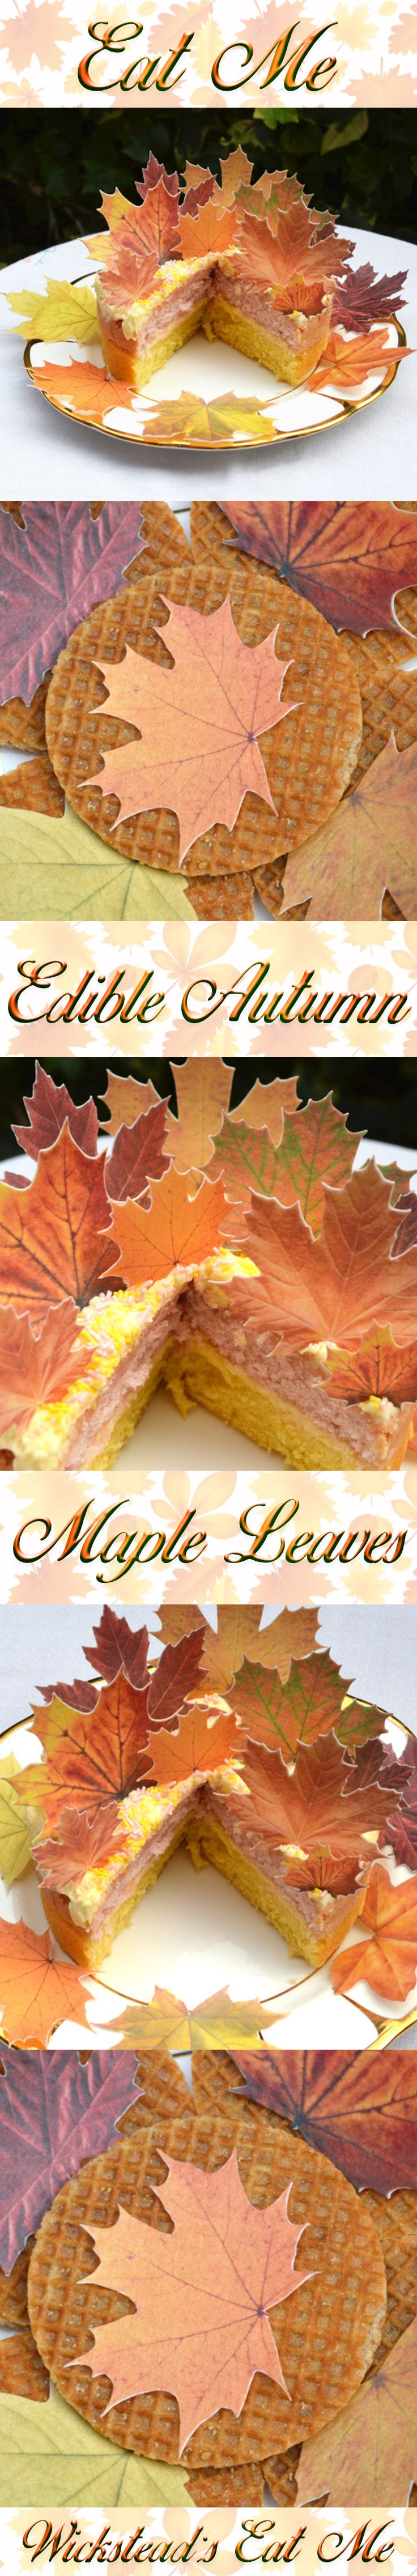 Edible Maple Autumn Fall Leaves Perfect for Autumn Fall Weddings www.WicksteadsEatMe.etsy.com